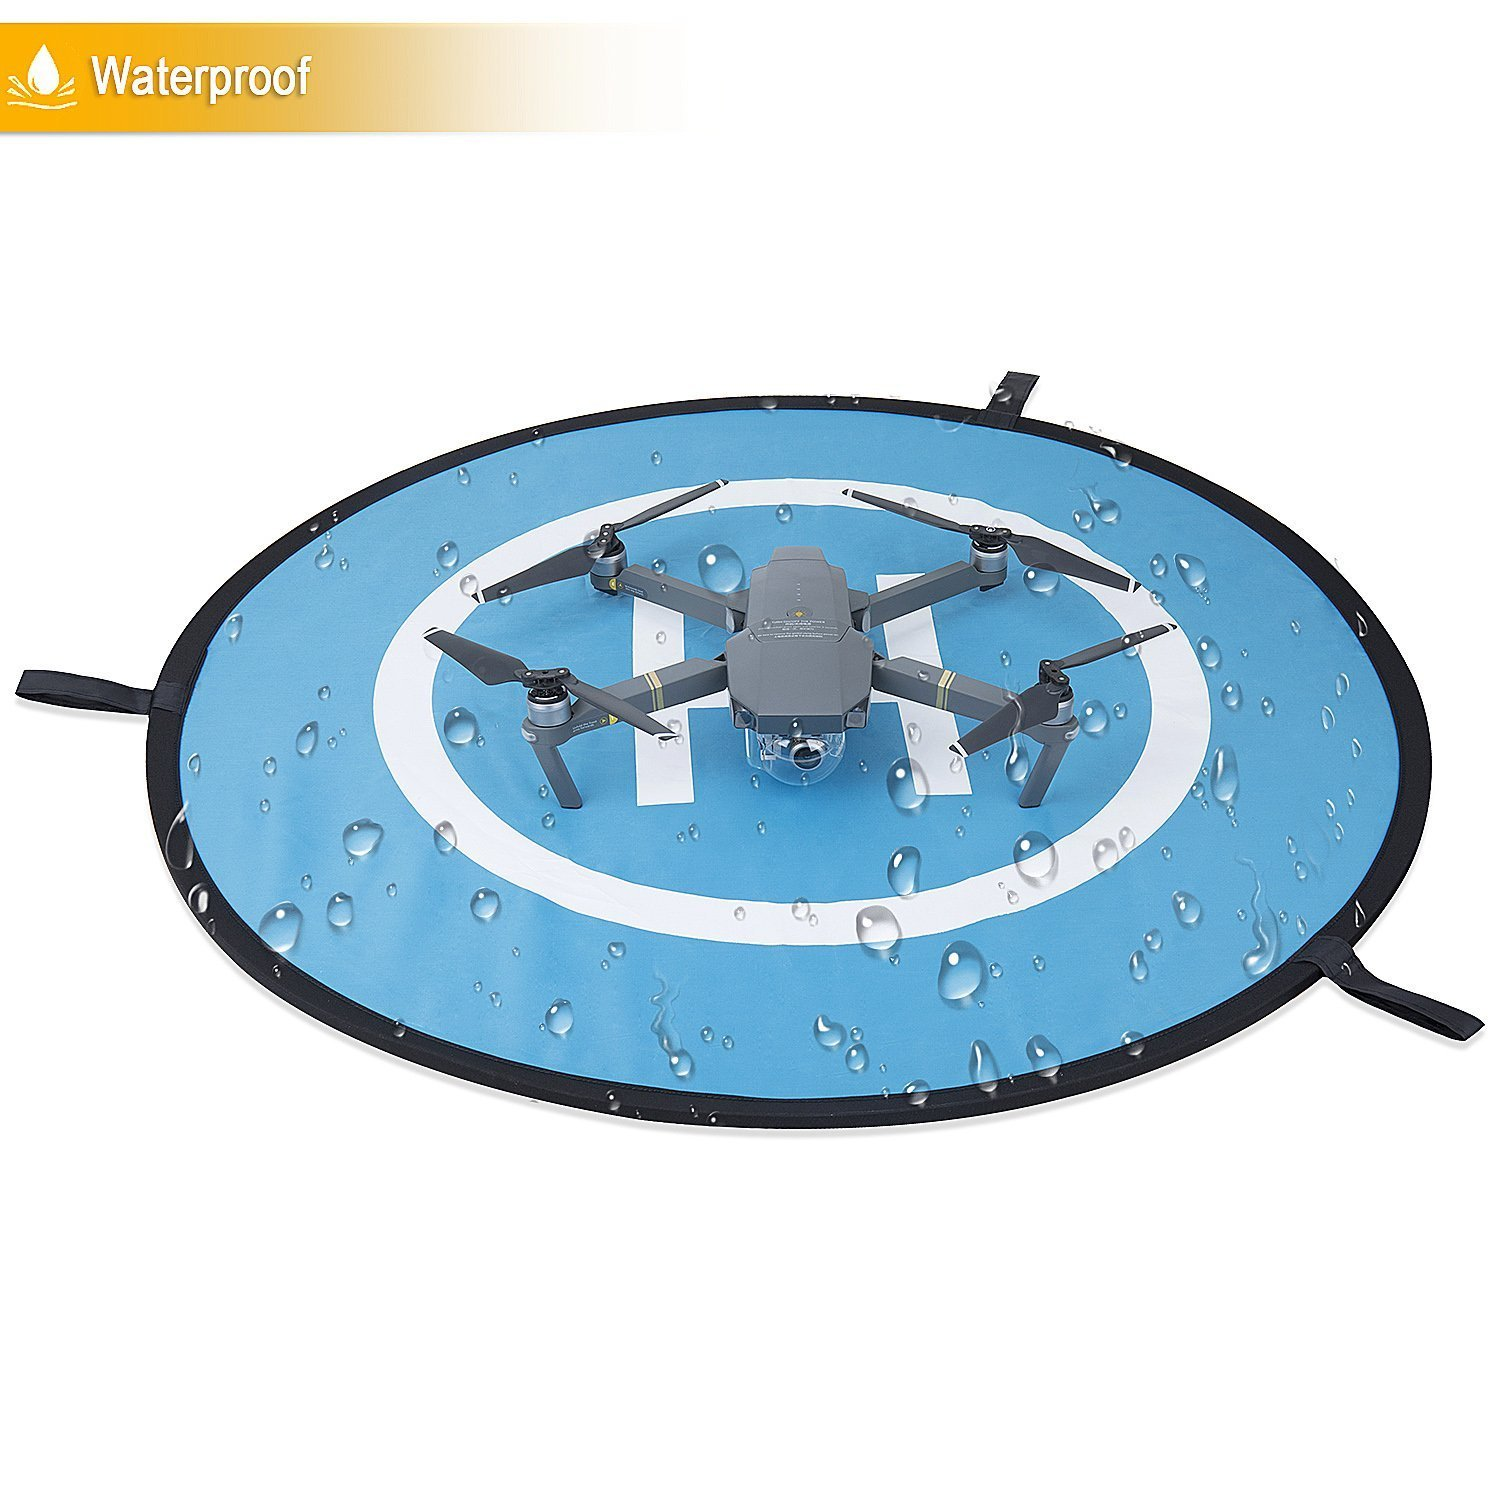 Drone Landing Pad- Universal Portable Foldable Drones Landing Pad For RC Drones Helicopter, PVB Drones, DJI Mavic Pro Phantom 2/3/4/ Pro, Antel Robotic, Holy Stone Gopro Kama, Parrot, 3DR Solo and So on